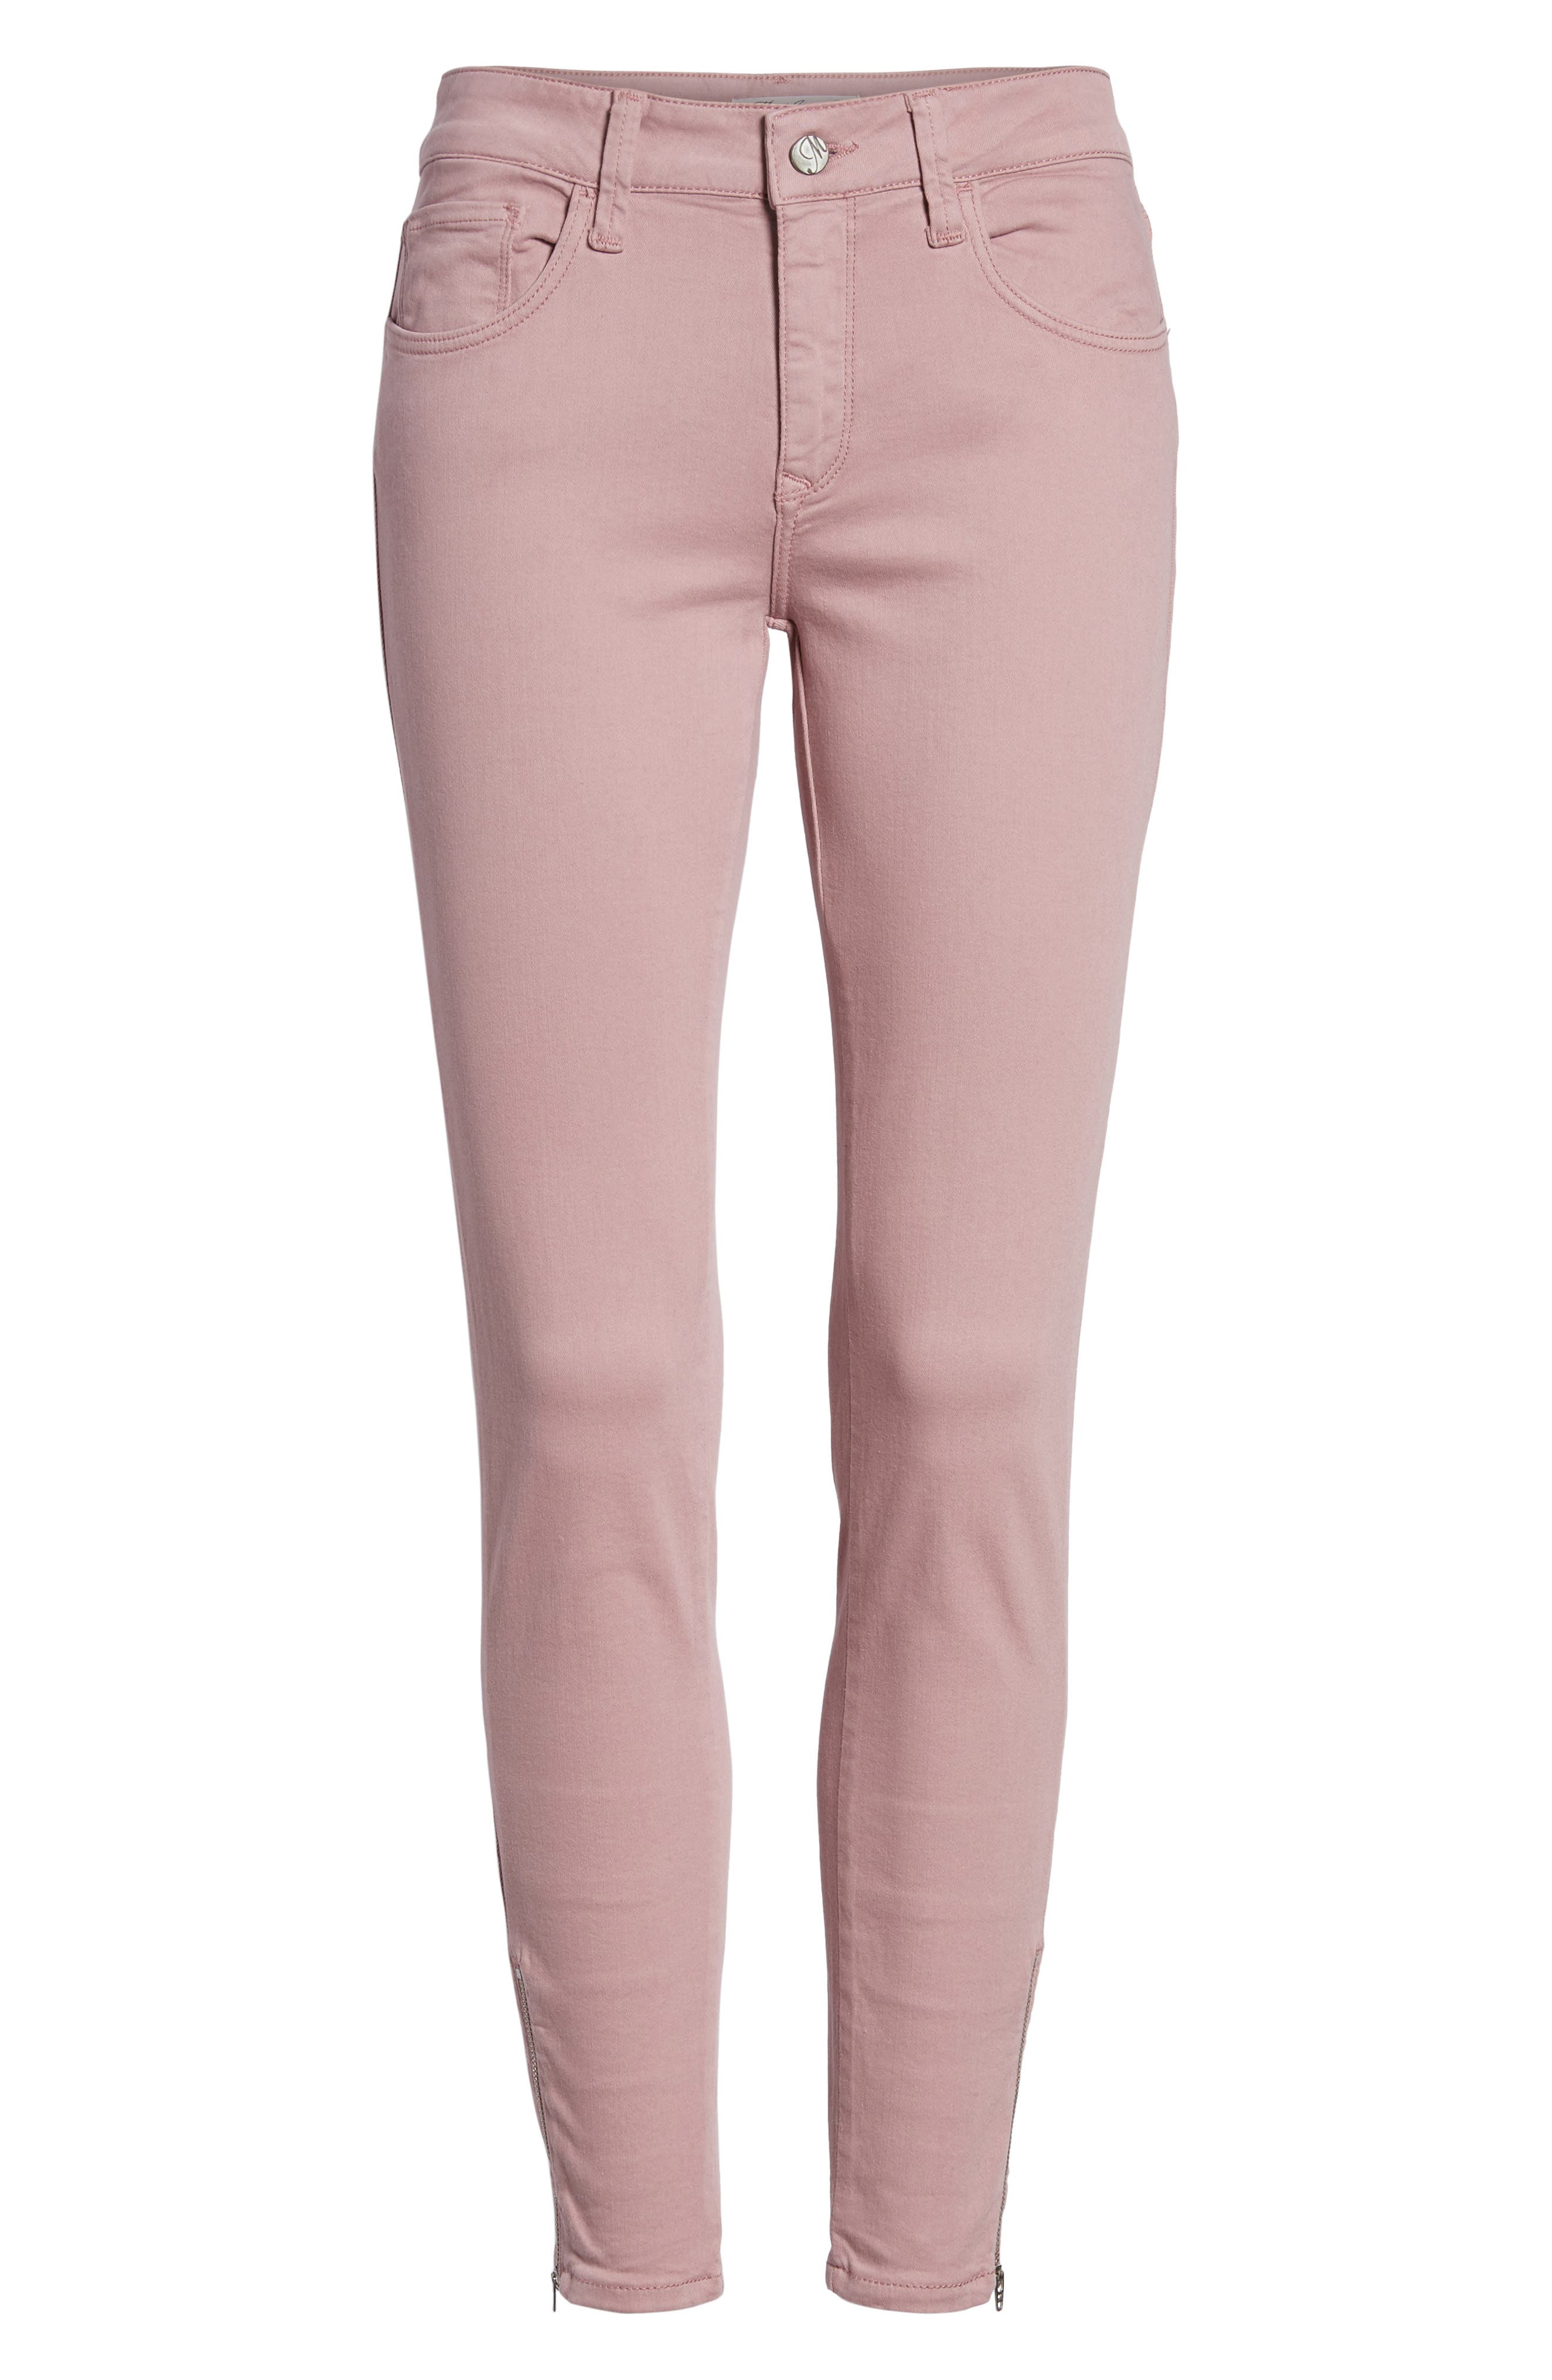 Adriana Zip Ankle Super Skinny Jeans,                             Alternate thumbnail 7, color,                             Zip Light Rose Twill